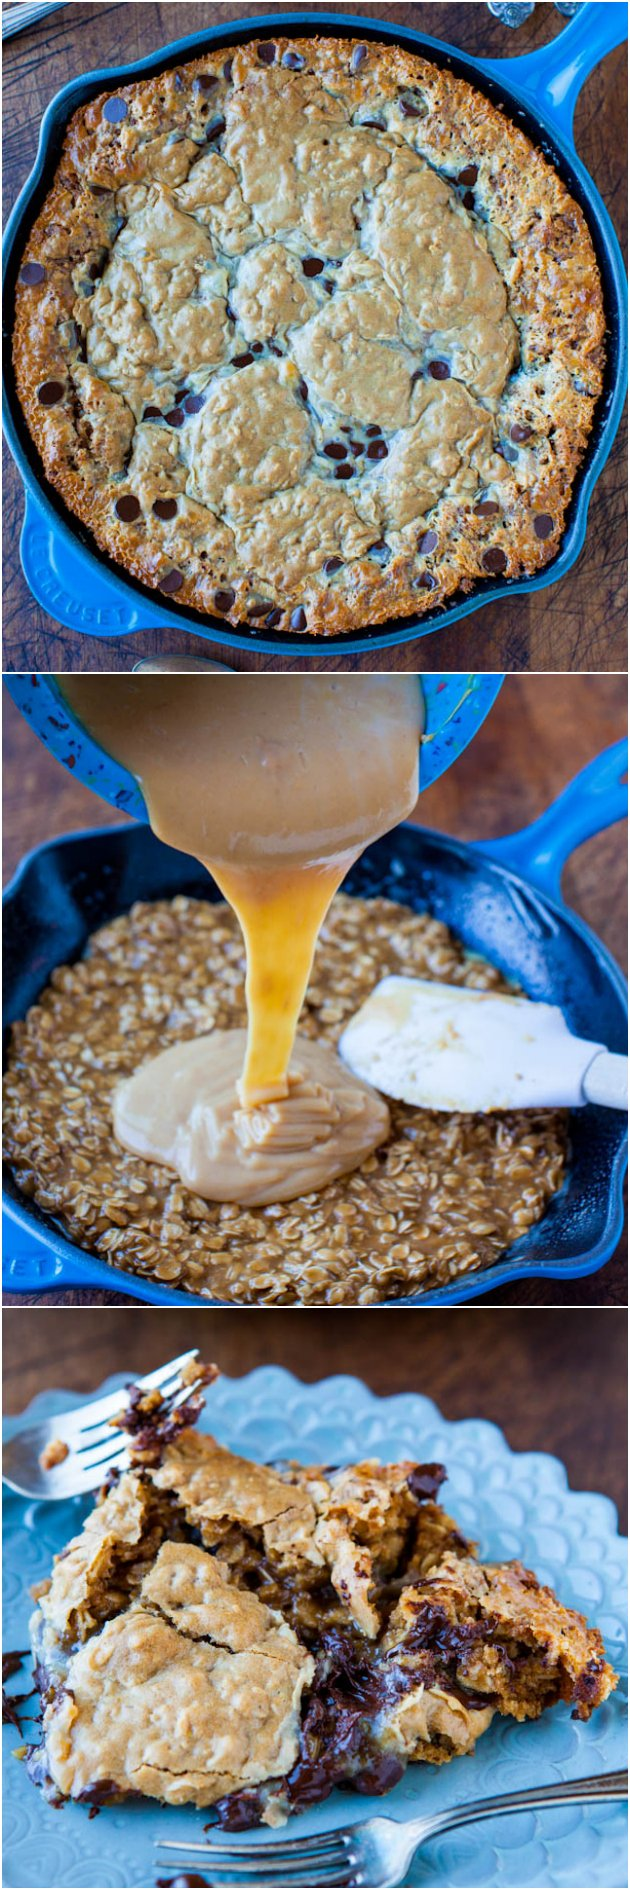 Chocolate Chip Peanut Butter Oatmeal Skillet Cookie - 3 fave cookies combined into 1 giant cookie! So easy & ready in 25 minutes. Pop it in before dinner & enjoy!